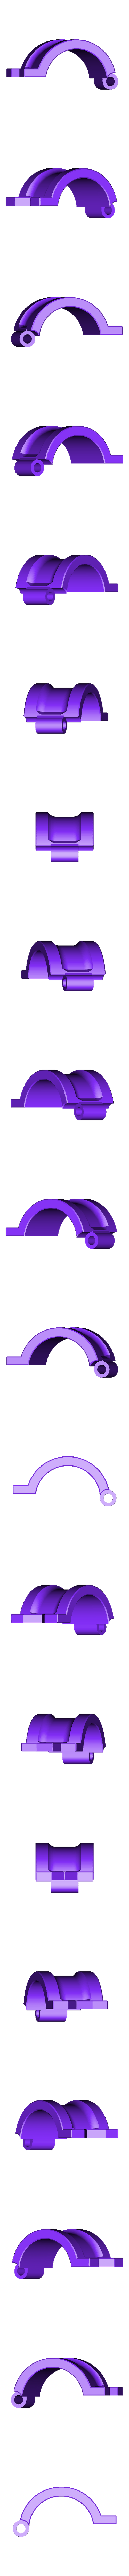 baterkabicykel22.stl Download free STL file Bicycle light battery holder • 3D printing template, mato4mato